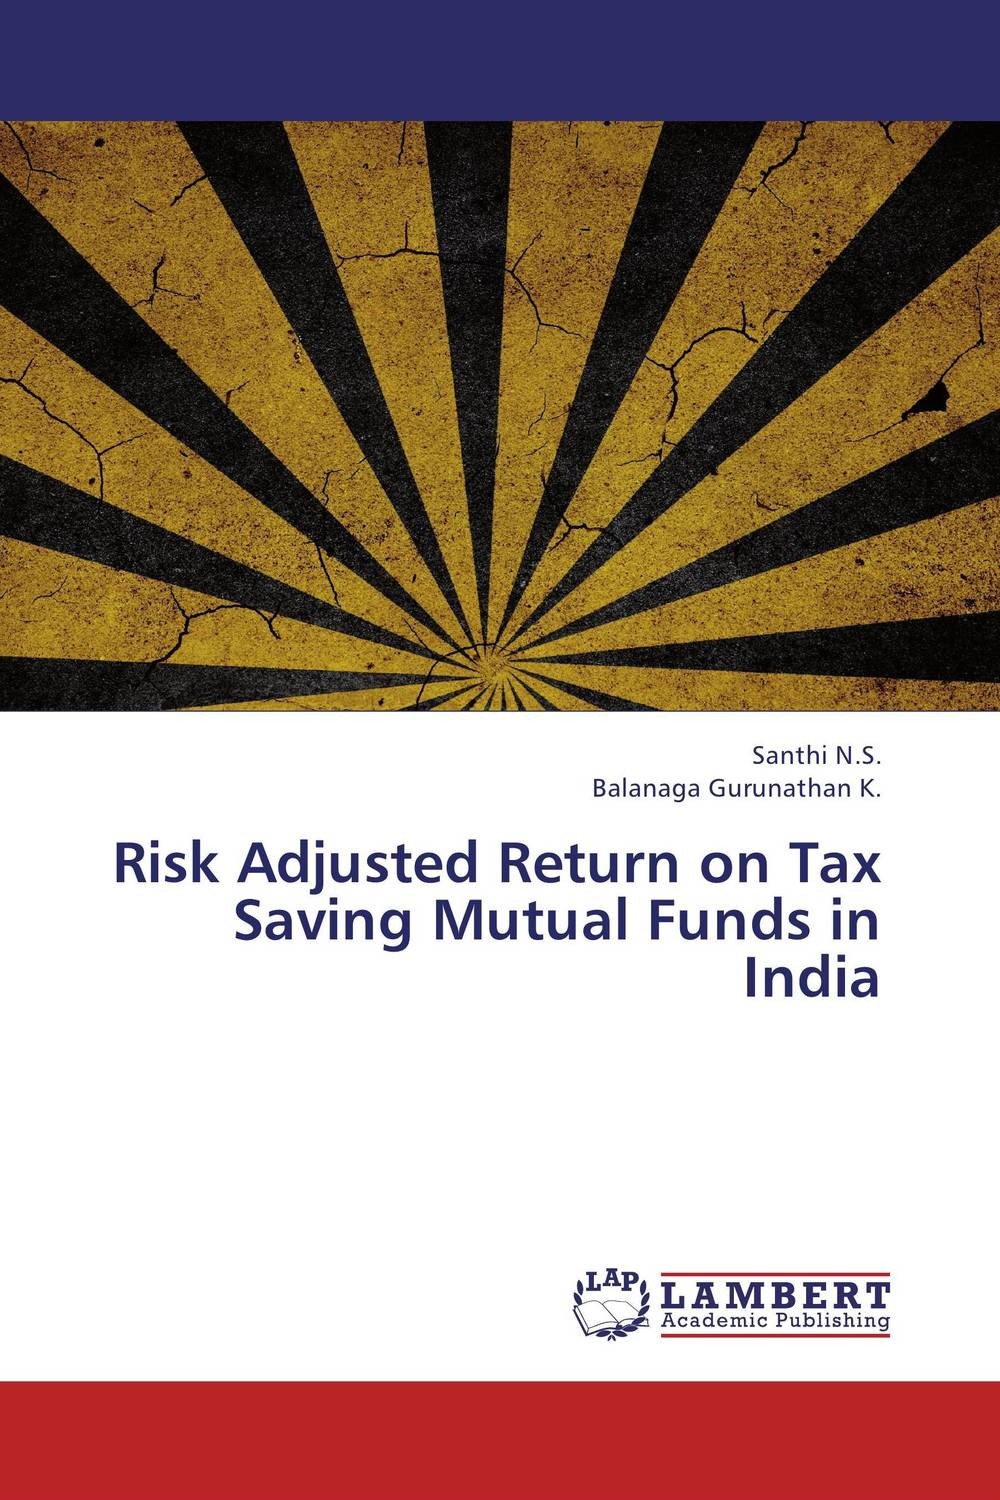 Risk Adjusted Return on Tax Saving Mutual Funds in India steve sims understanding and paying less property tax for dummies